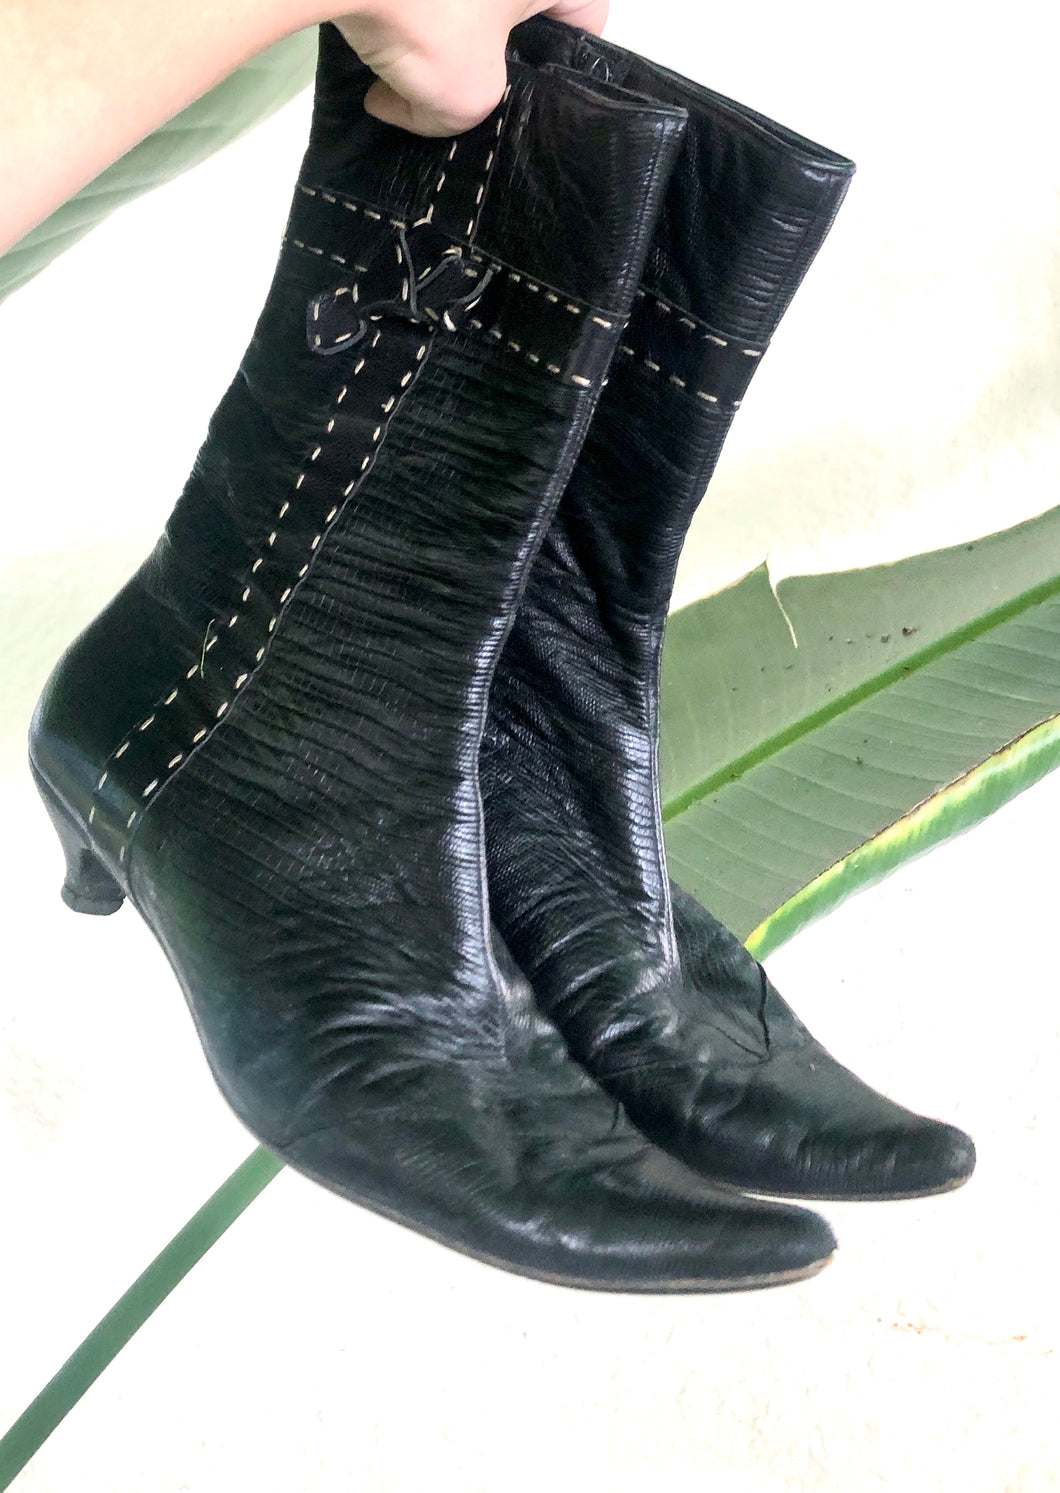 Vintage Henry Beguelin Black Boots - The Curatorial Dept.